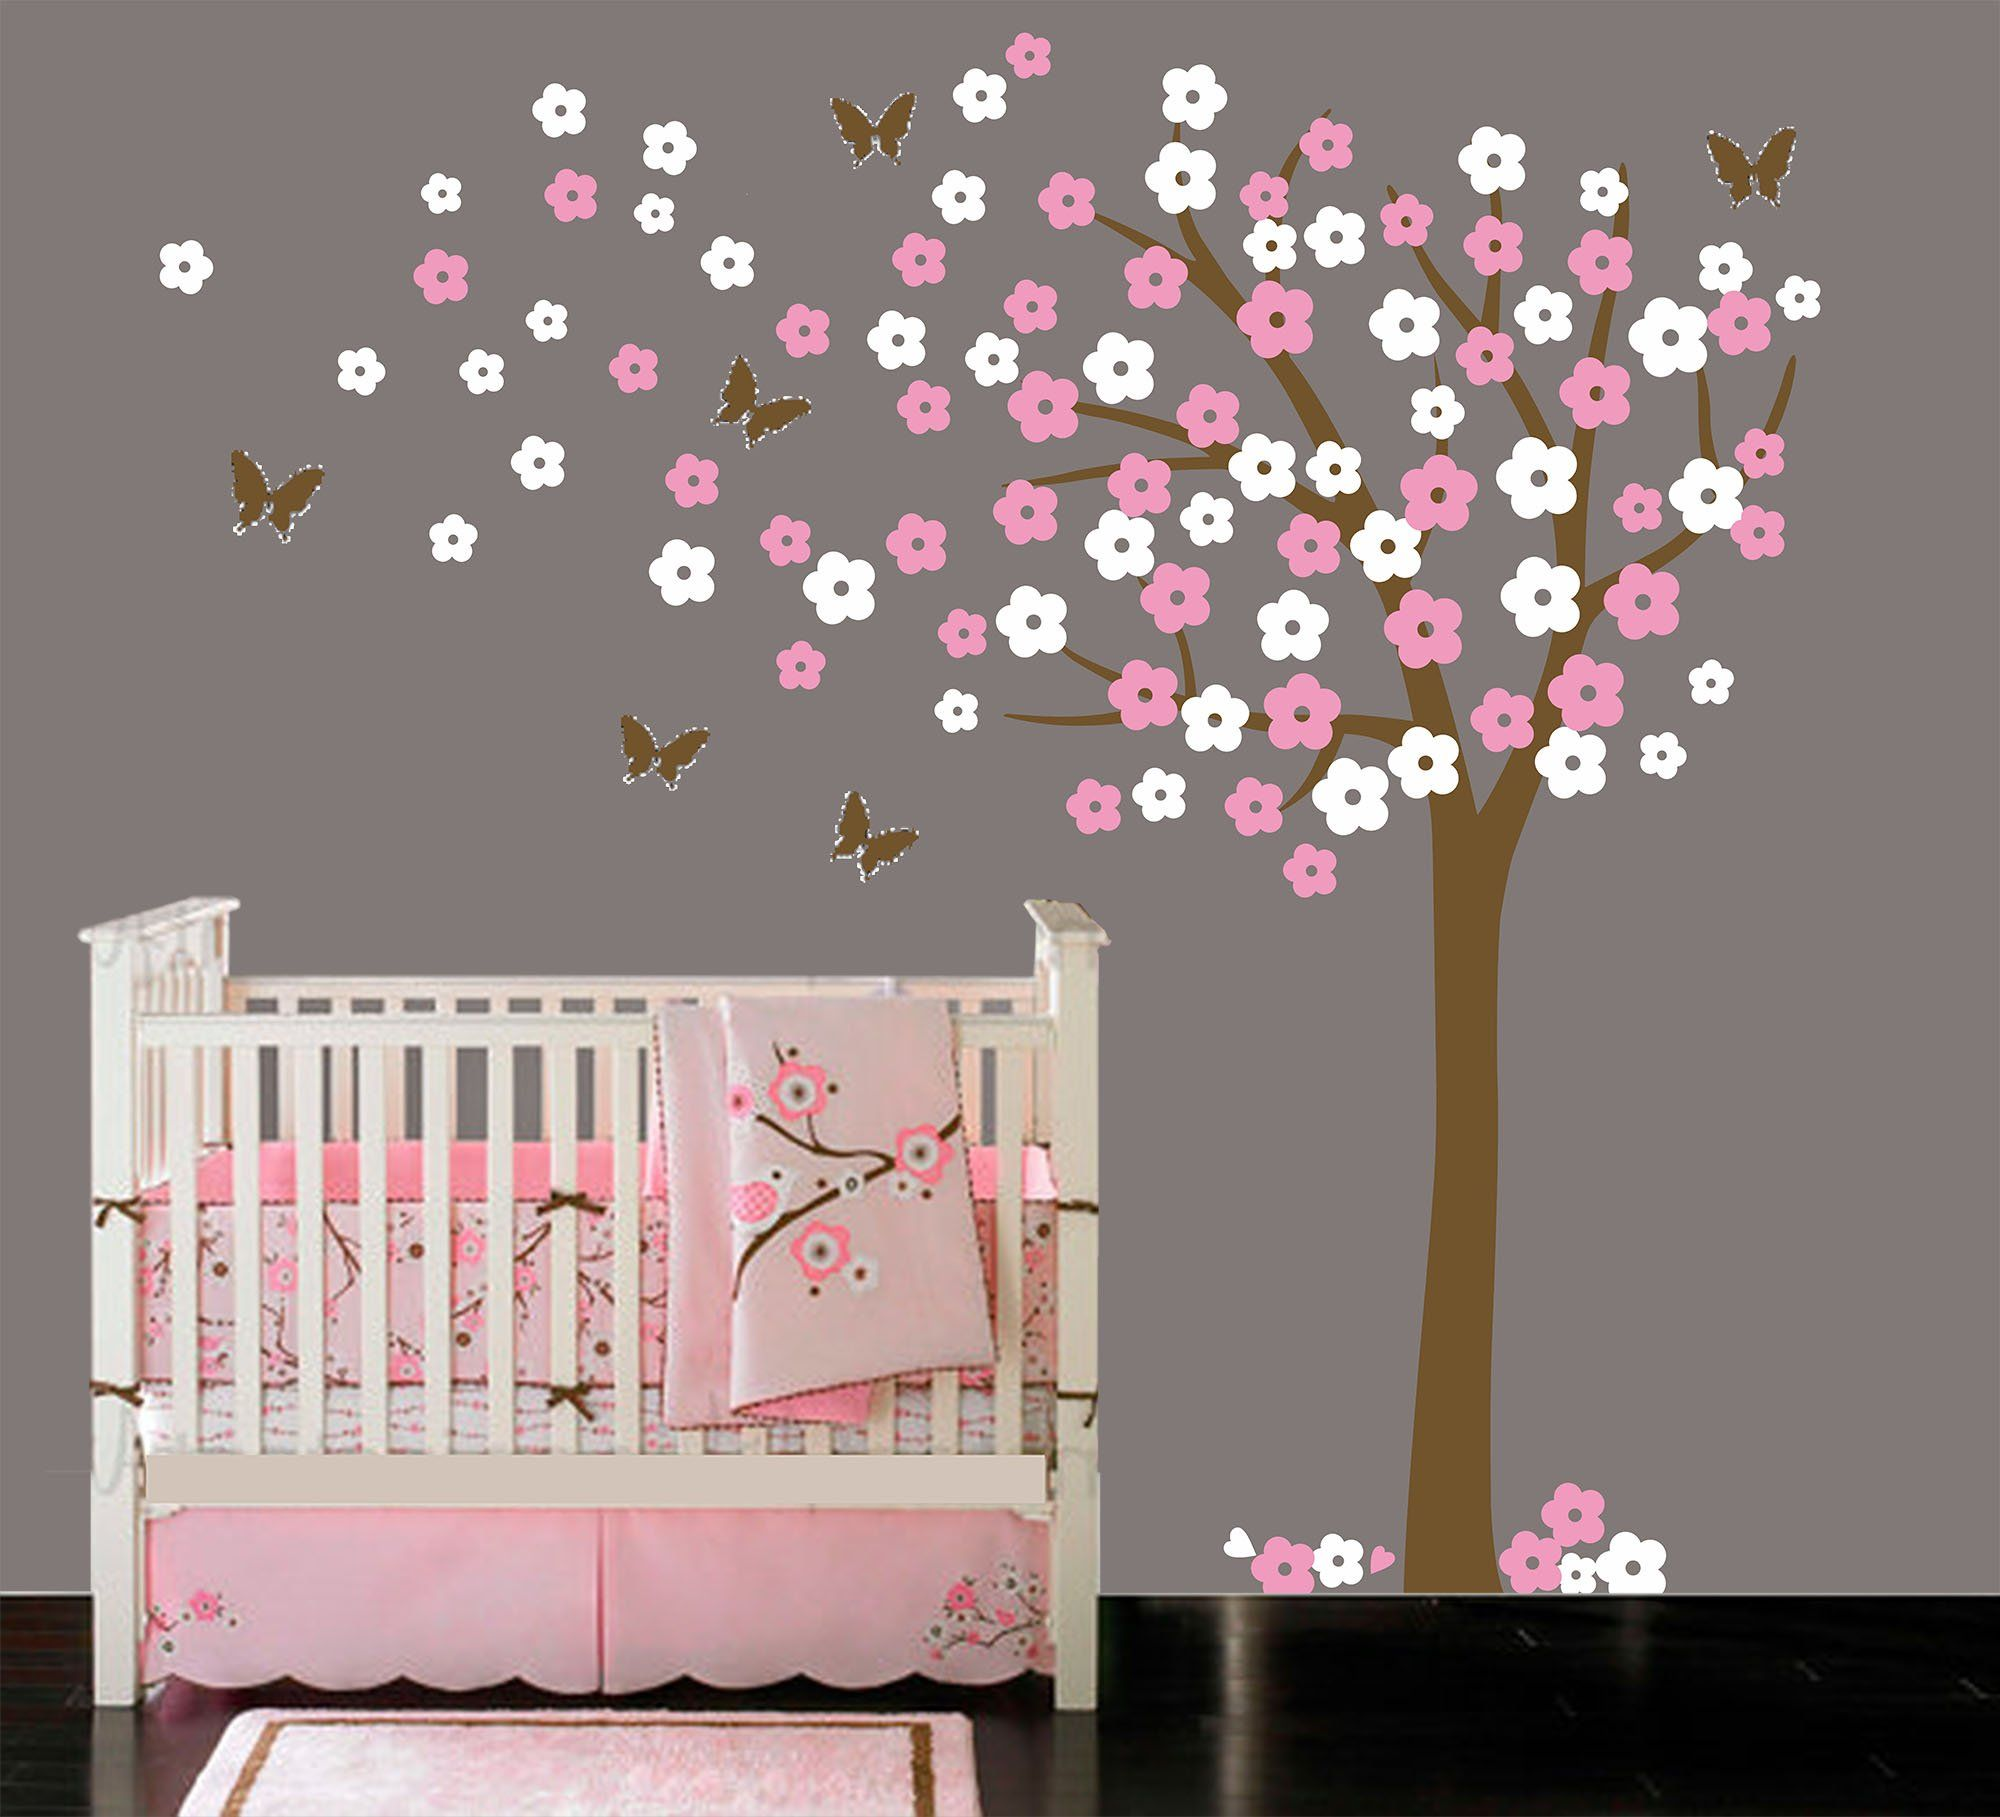 Luckkyy Large Blooming White And Pink Flowers Tree With Birds Wall